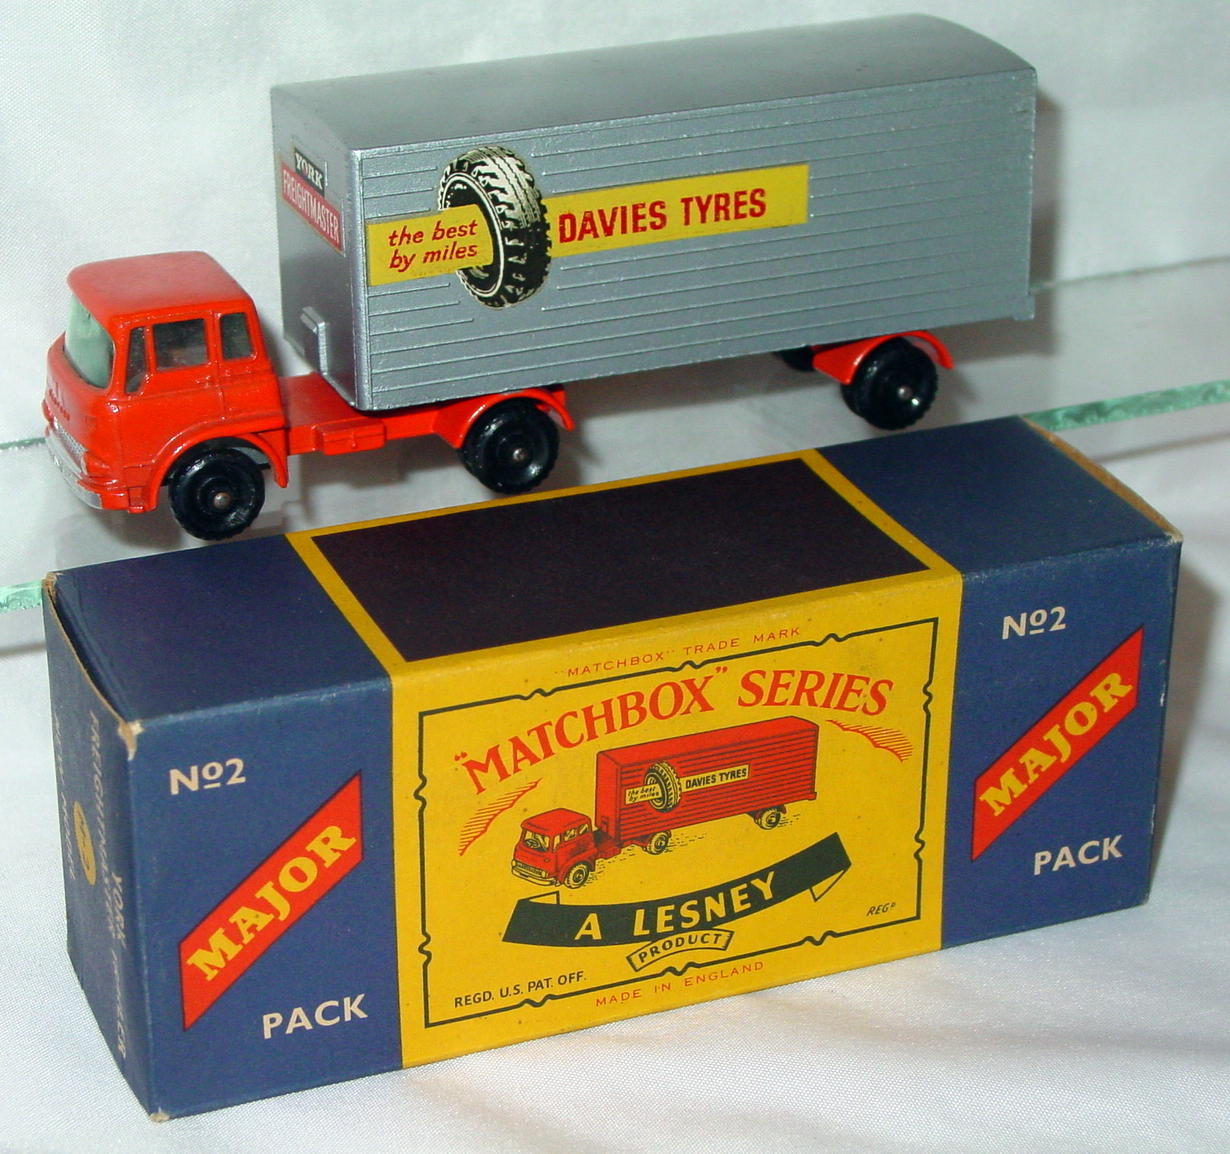 Major Pack 02 B 2 - Bedford truck Davies Tyres 2 chips C9+ Lesney Box